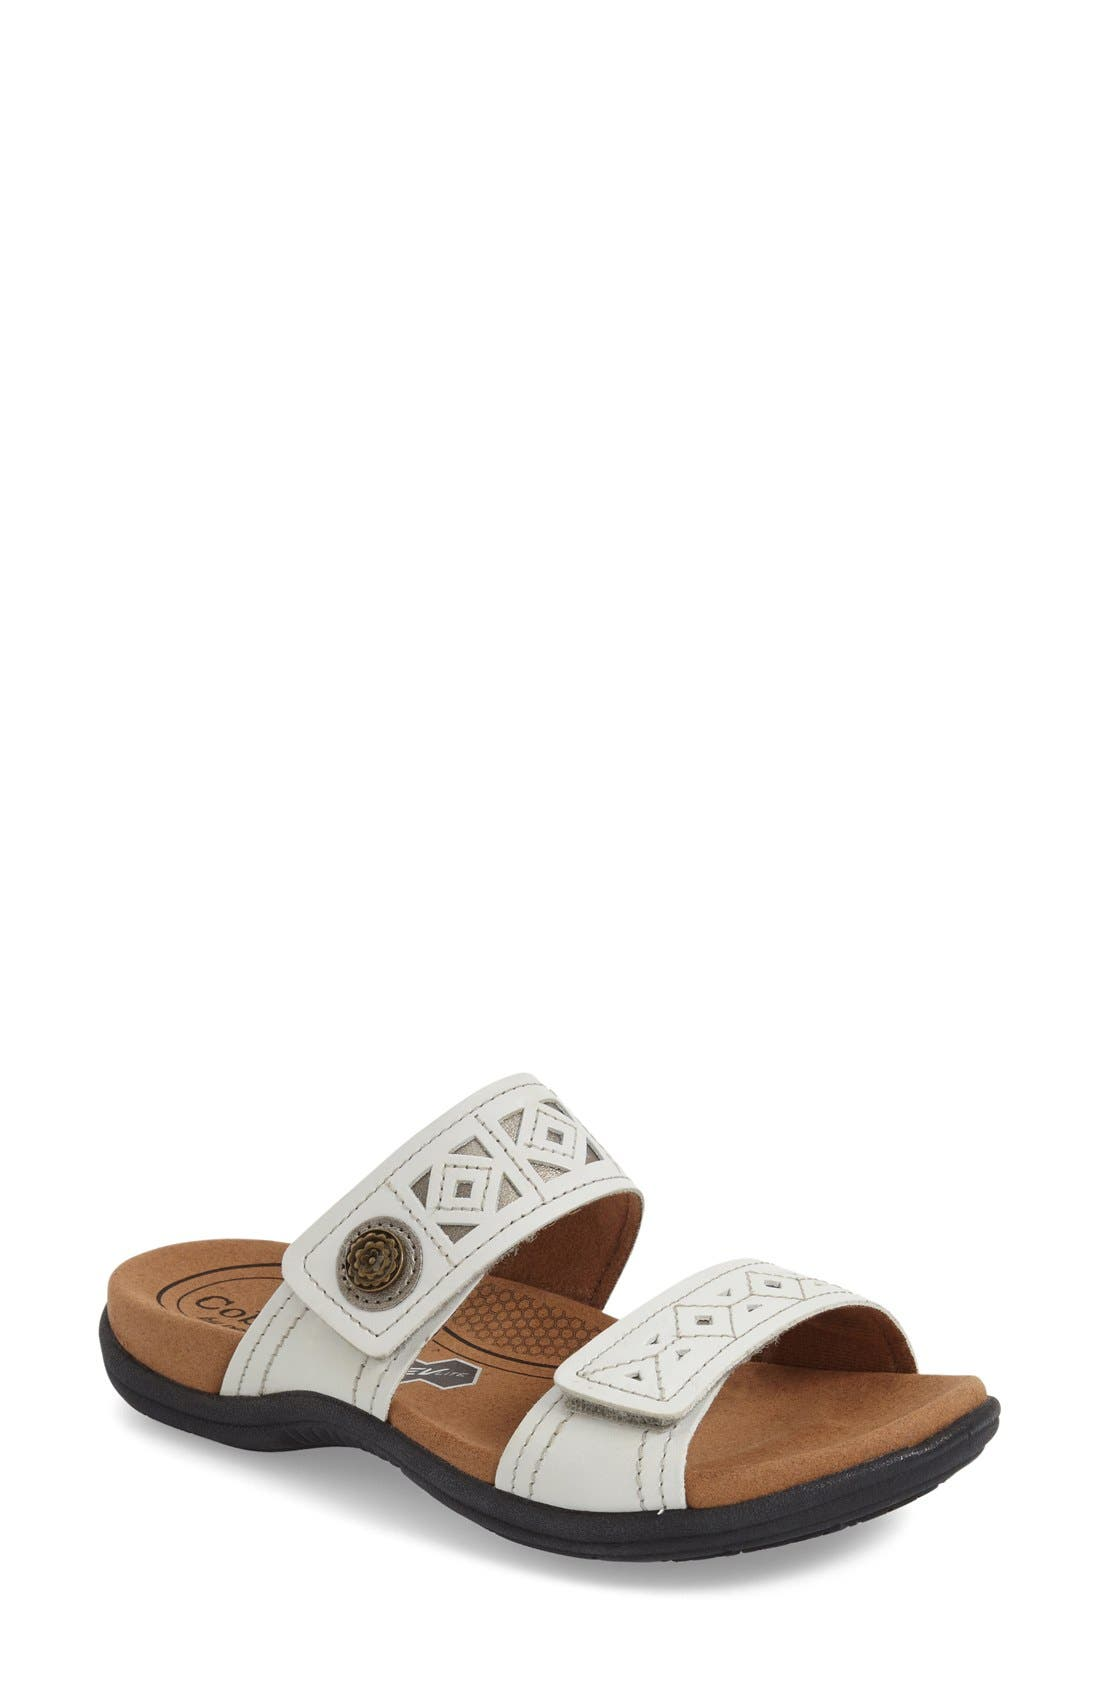 ROCKPORT COBB HILL REVsoul Two Strap Sandal